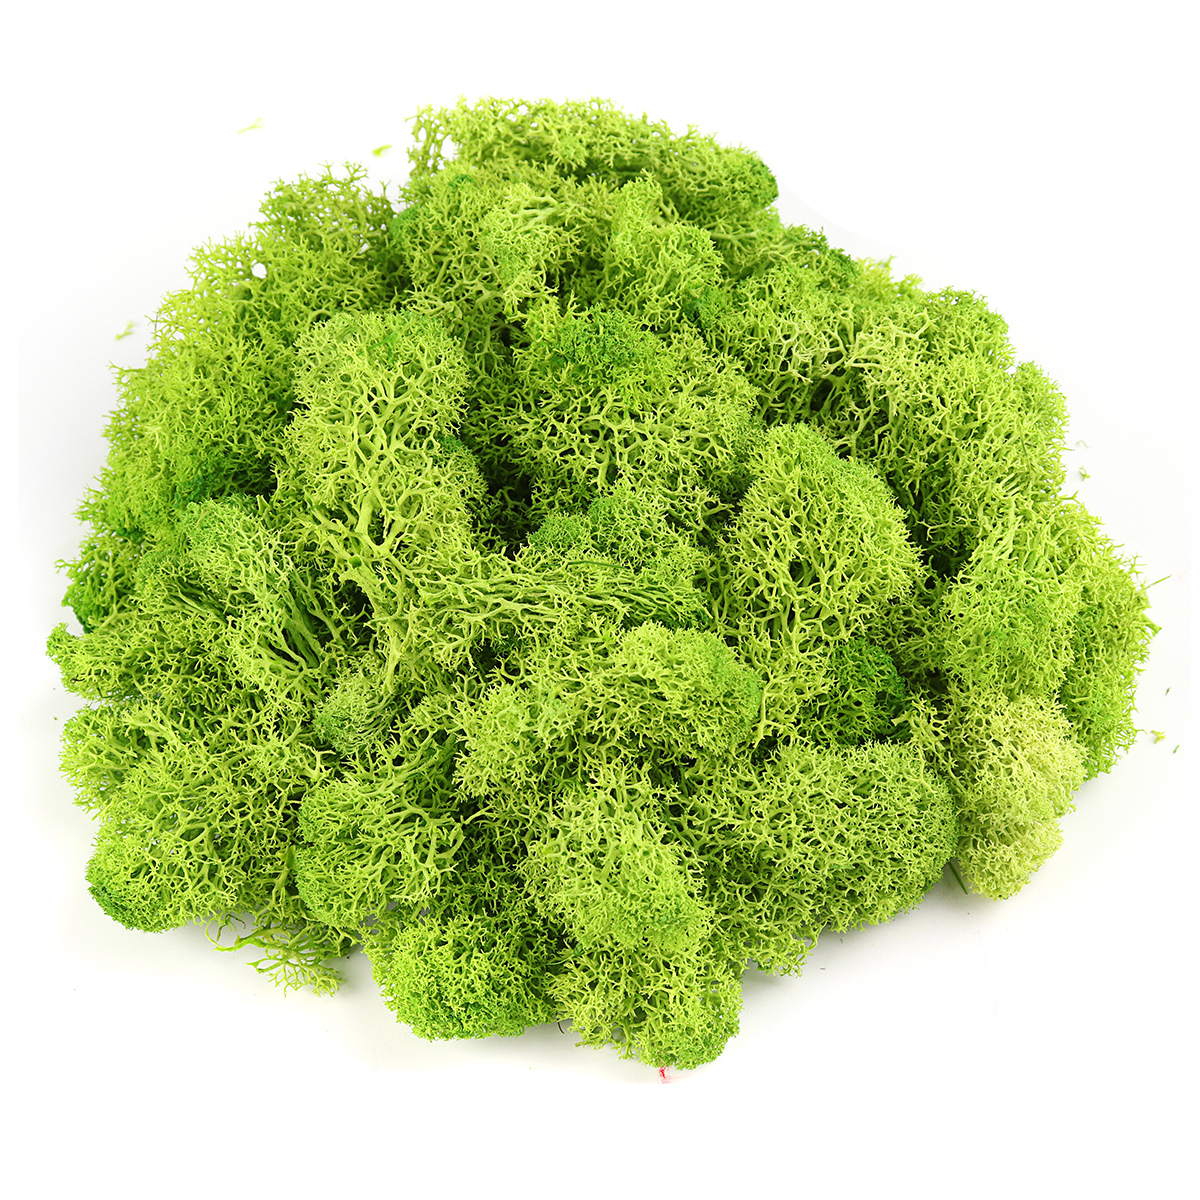 200g Natural Norwegian Reindeer Moss Preserved Dried Craft Flower Decorations